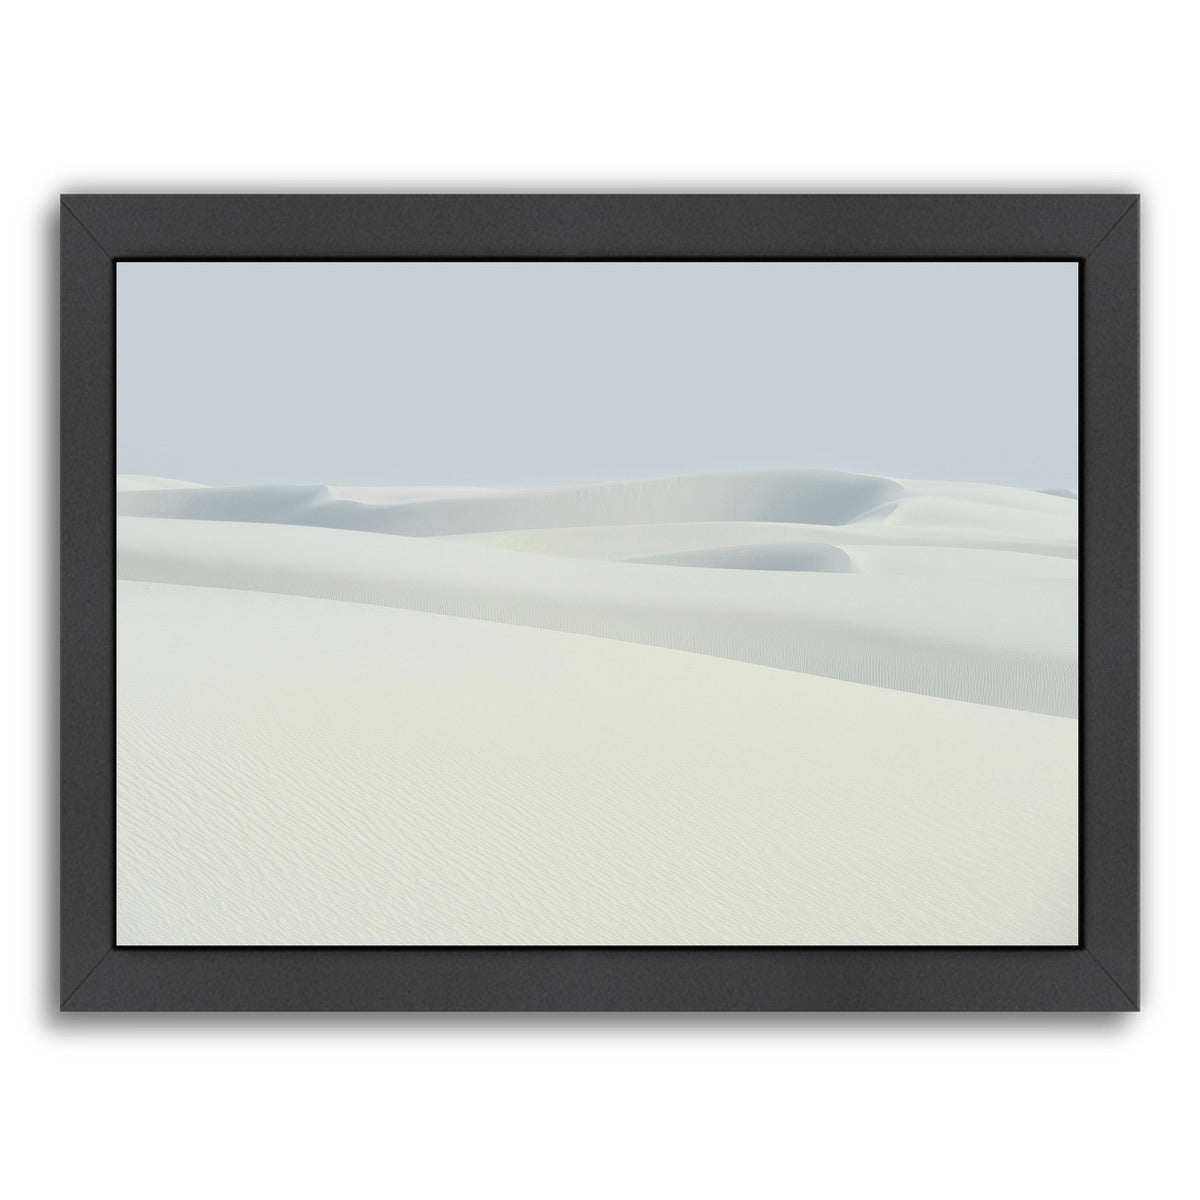 Sand Dunes By Chaos & Wonder Design - Black Framed Print - Wall Art - Americanflat